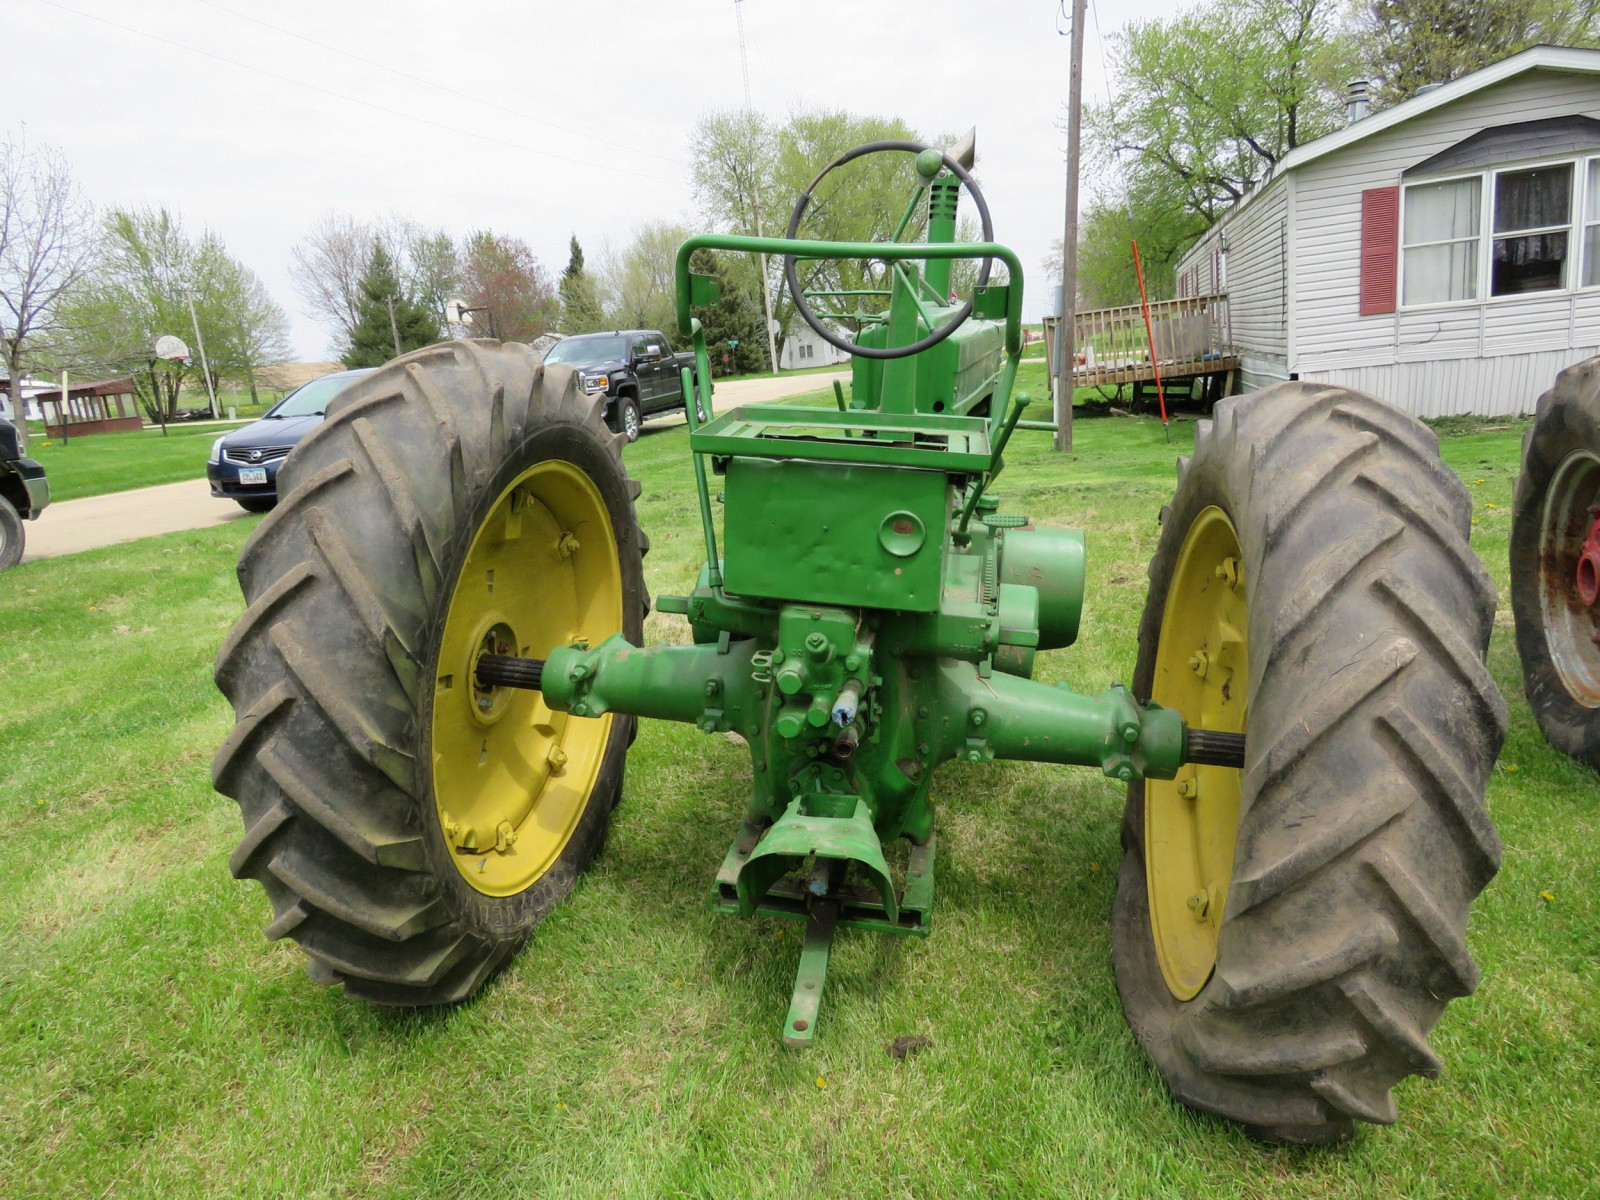 Styled John Deere A Tractor - Image 6